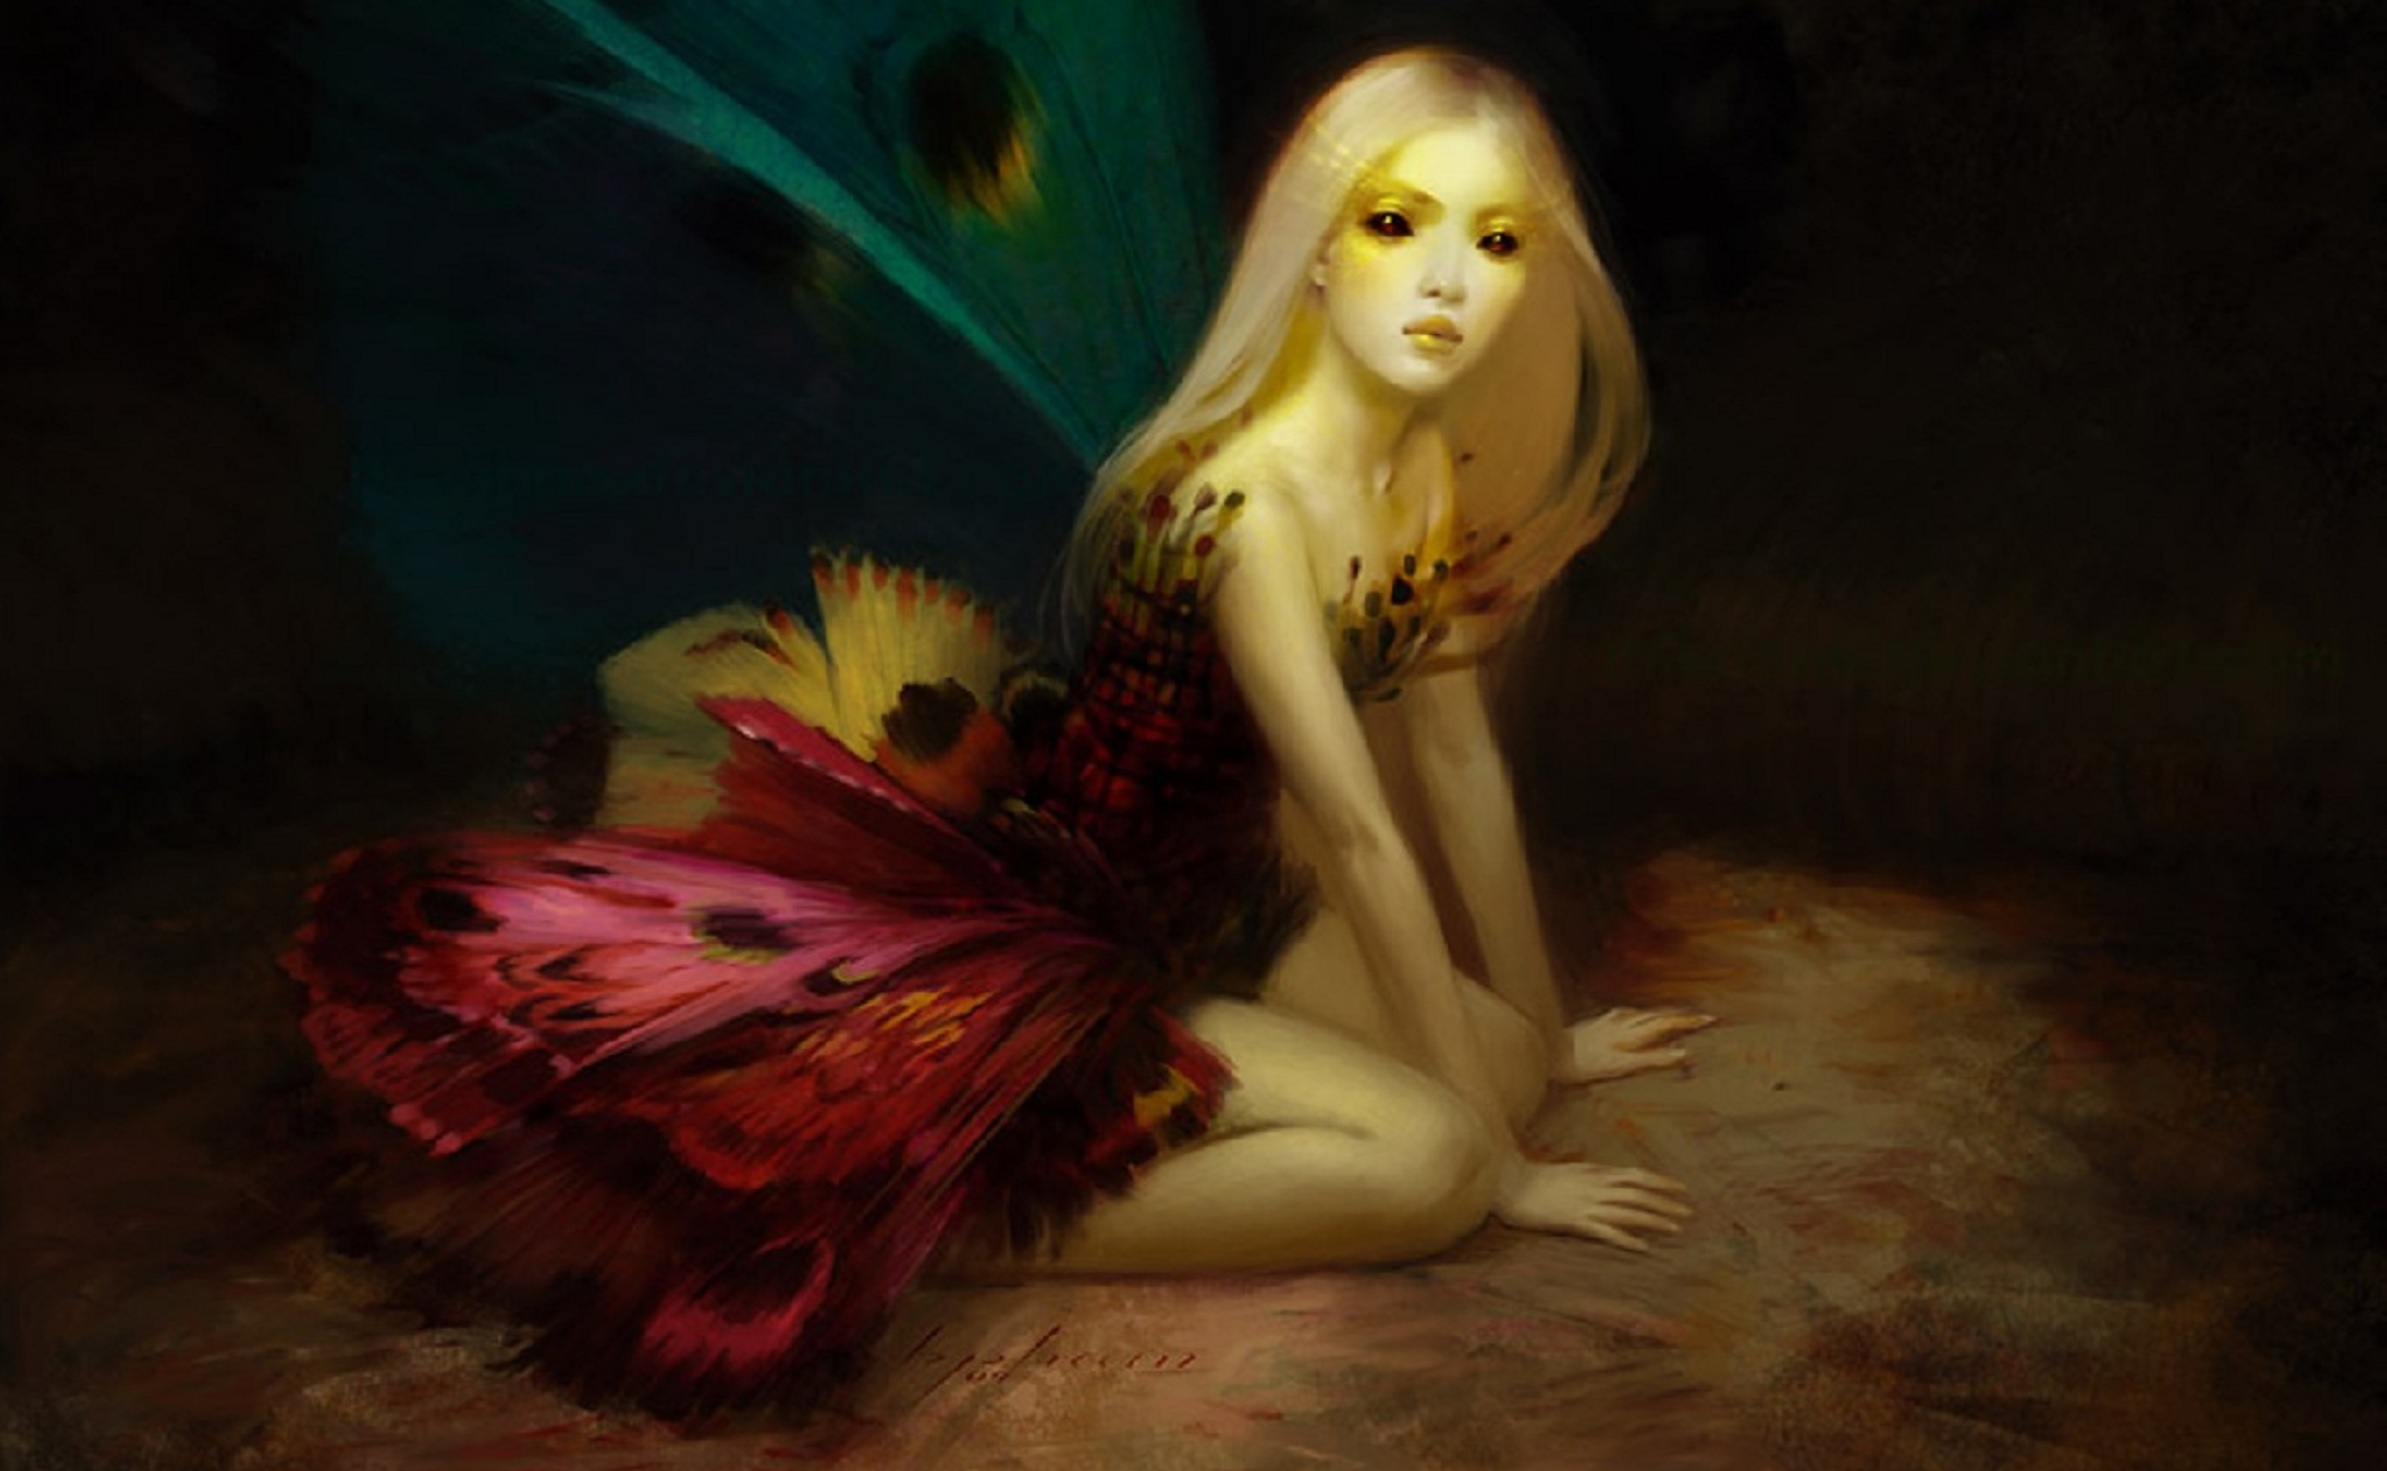 Fairy full hd wallpaper and background image 2387x1471 id275366 fantasy fairy wallpaper voltagebd Image collections